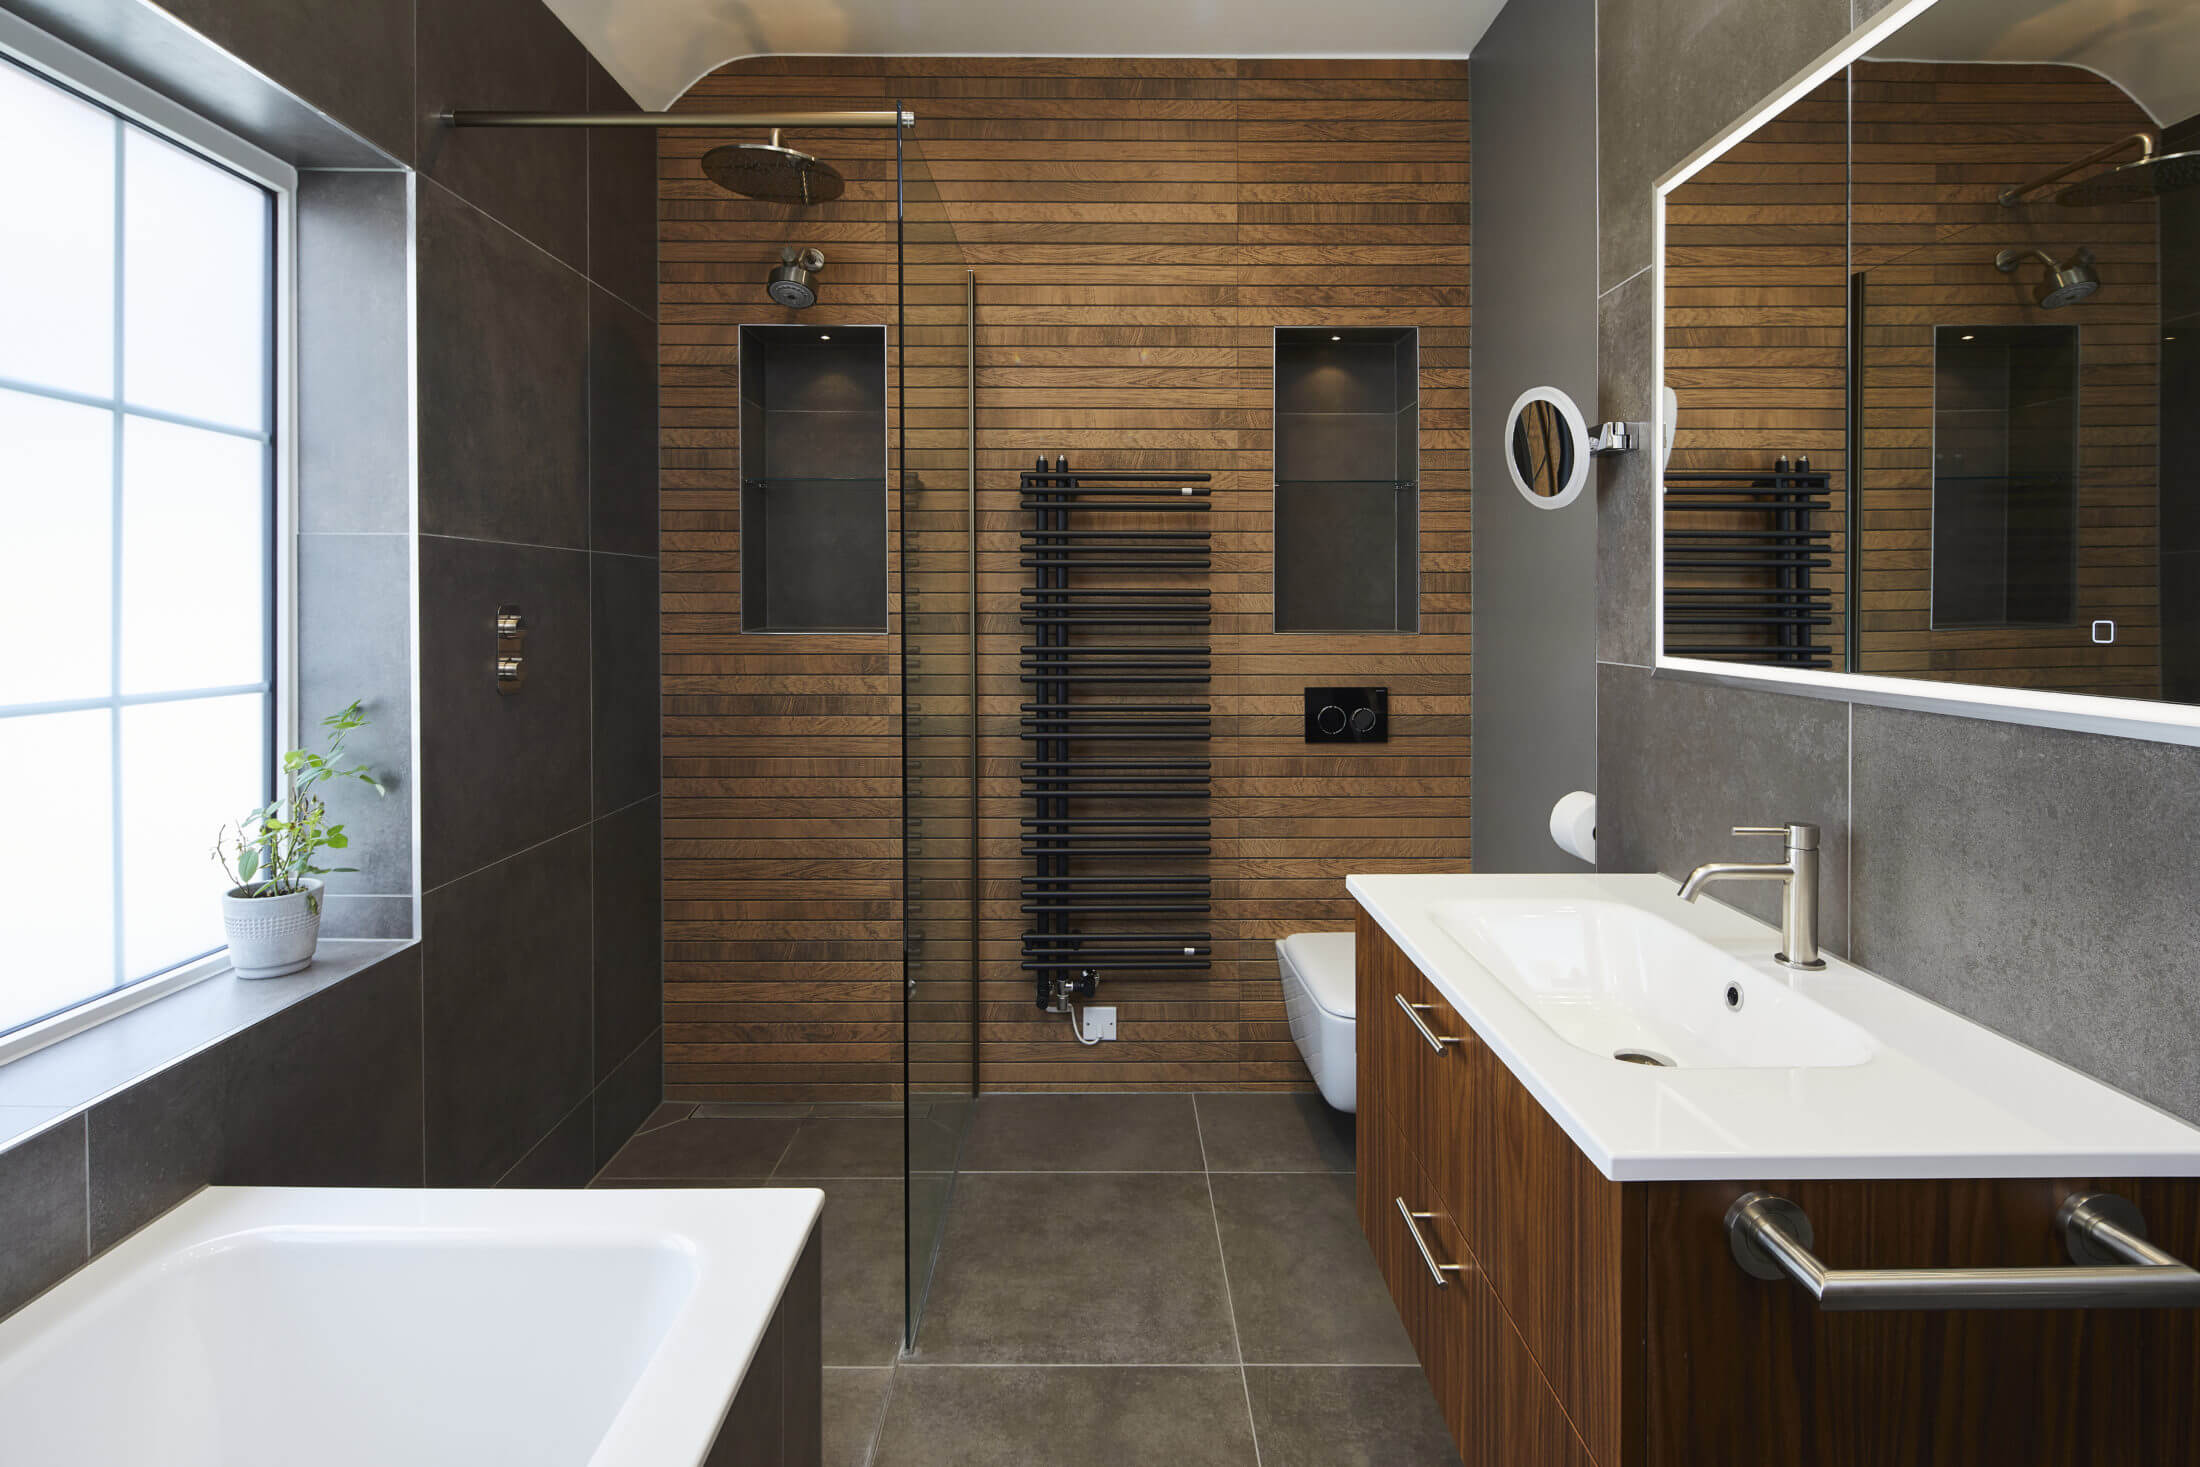 Bathroom with wetroom and bath in Teddington